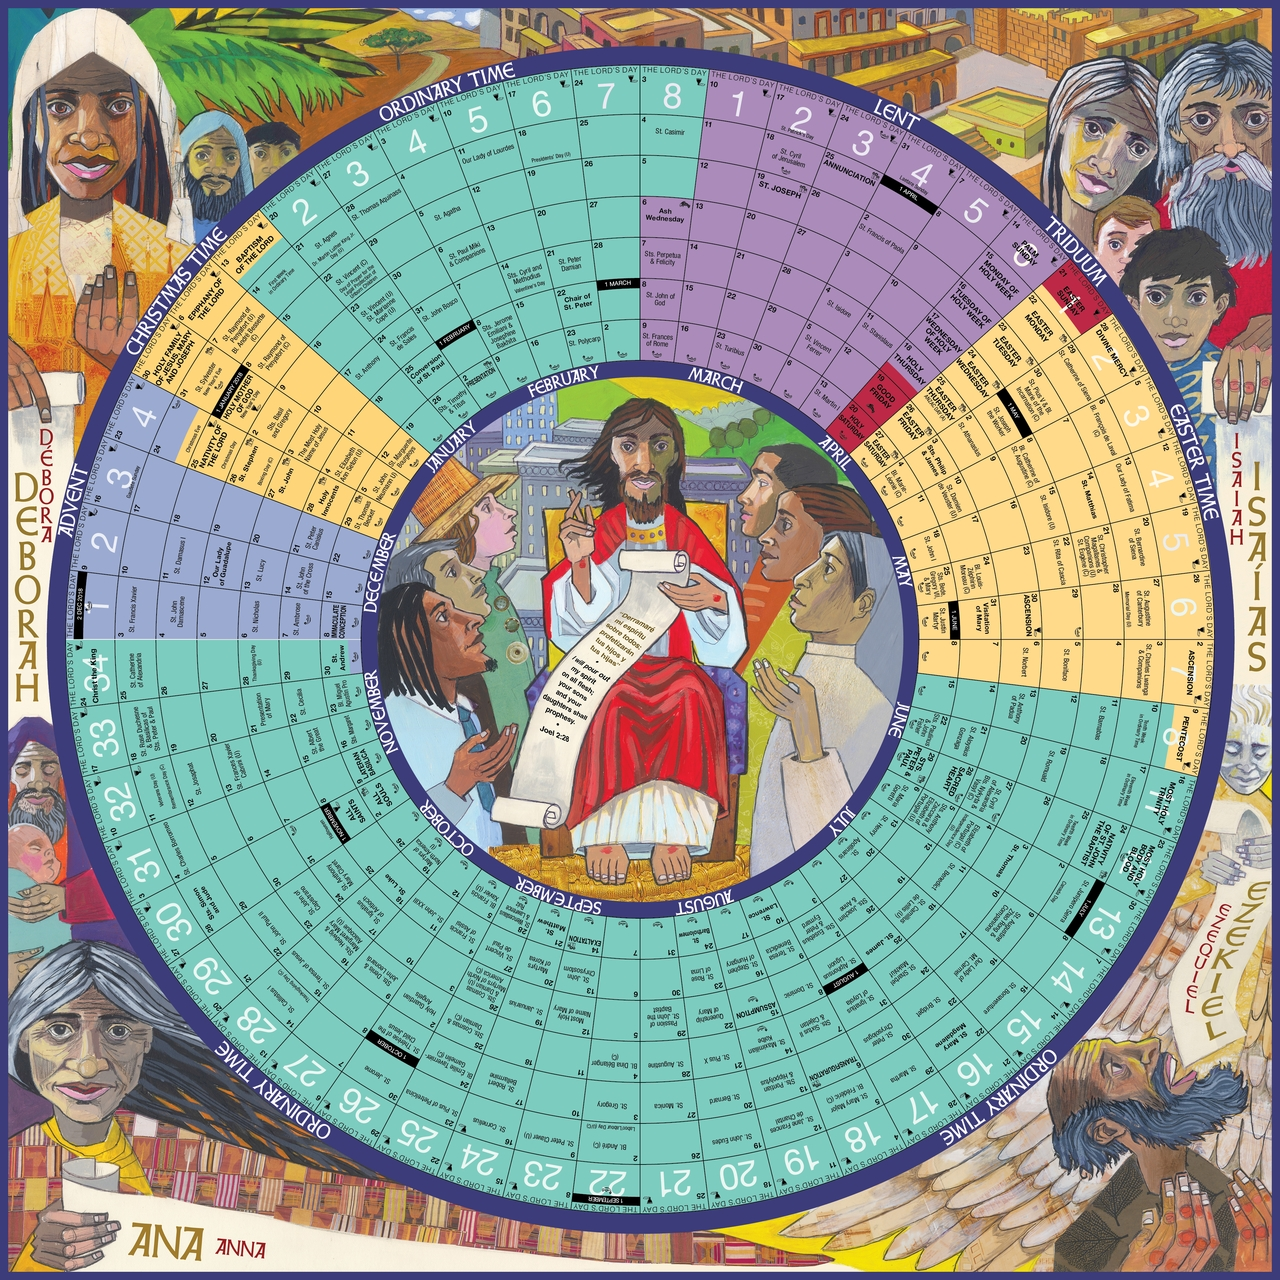 Catholic Diocese Of Salt Lake City - 2019 Liturgical Calendar For with regard to Images Of Catholoic Liturgical Calendar